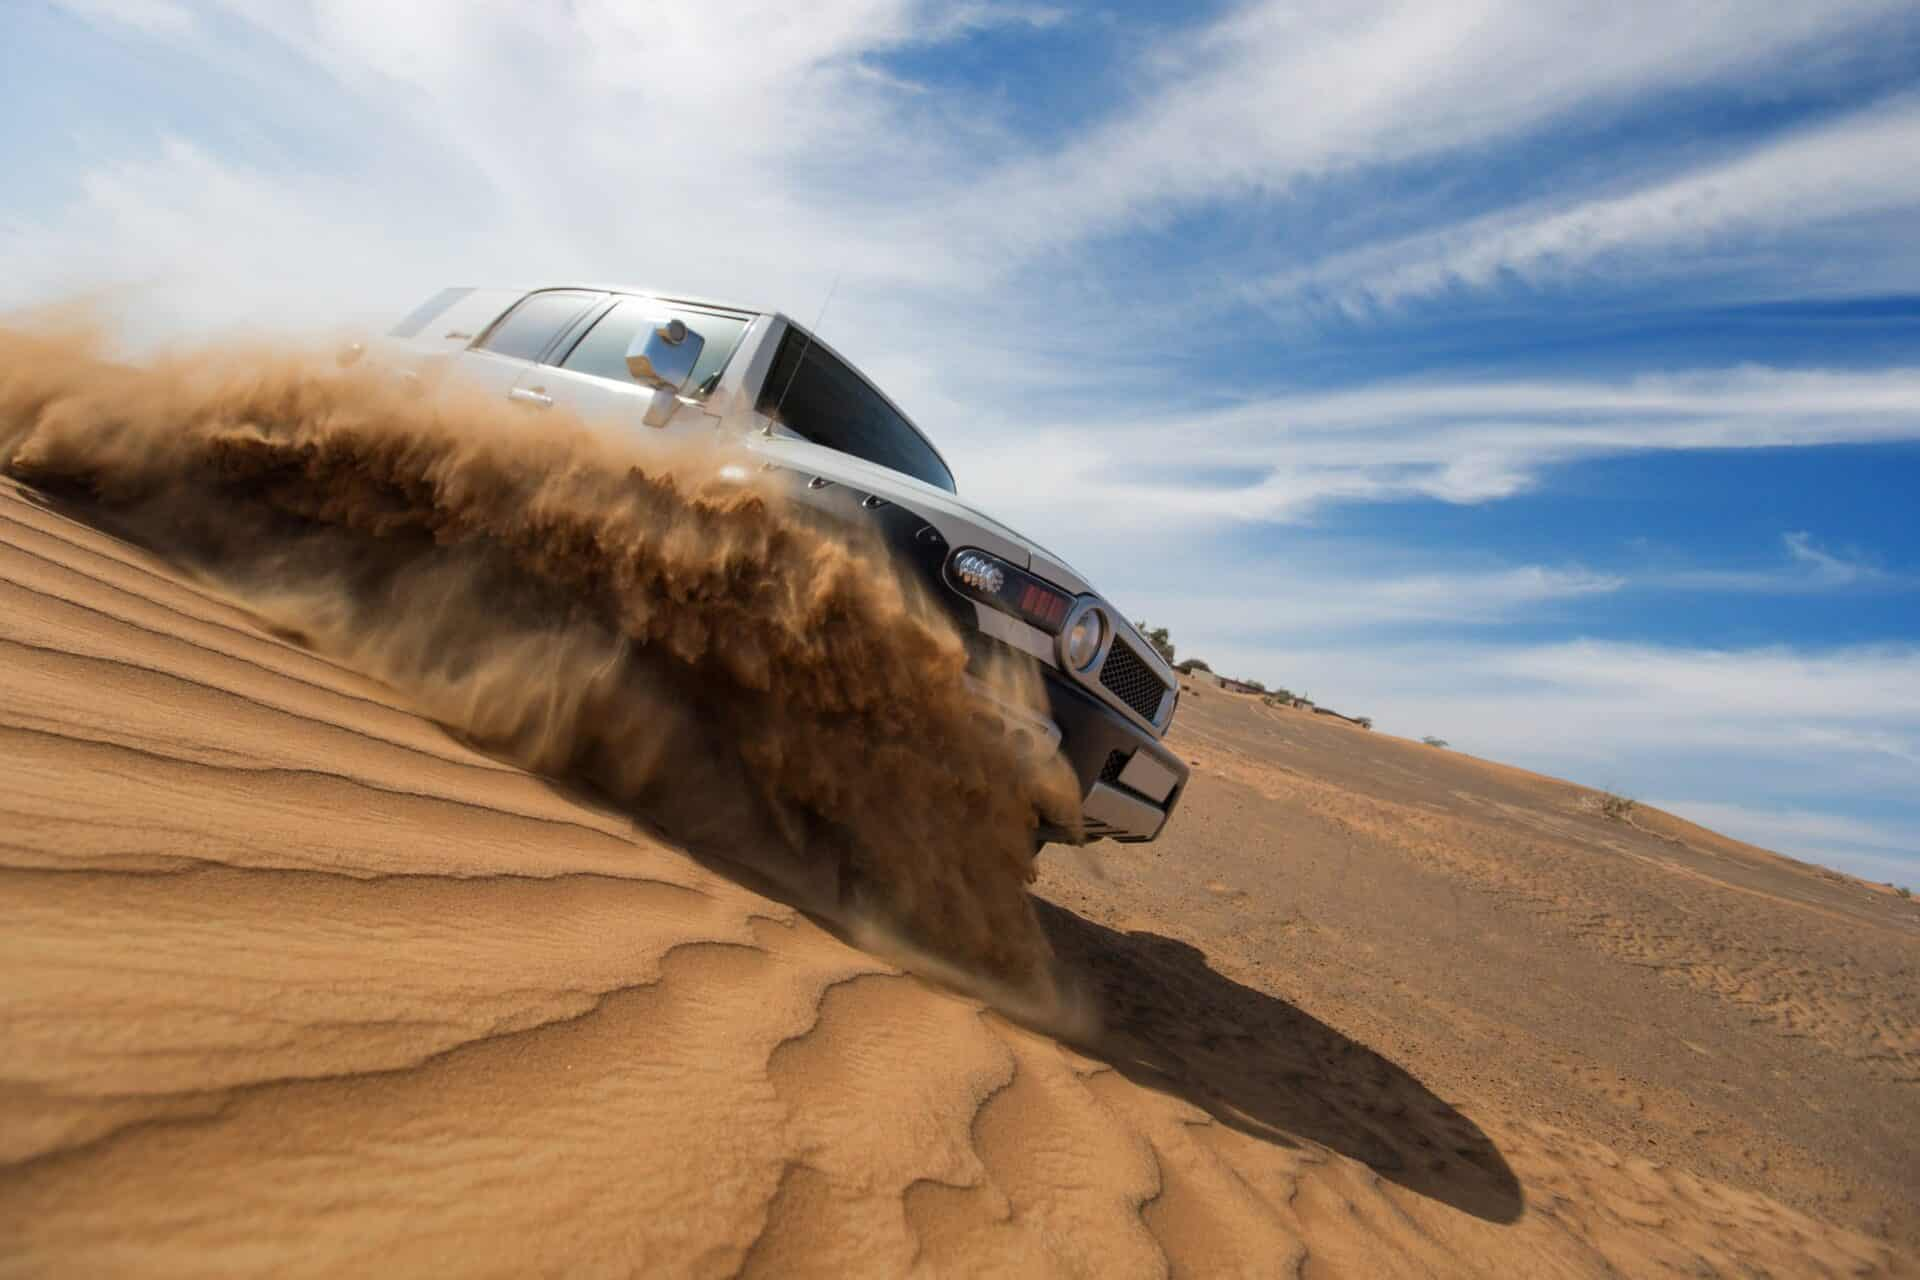 4WD Landcruiser, offroad adventure in desert   4WD Performance modifications by 4x4 Obsession